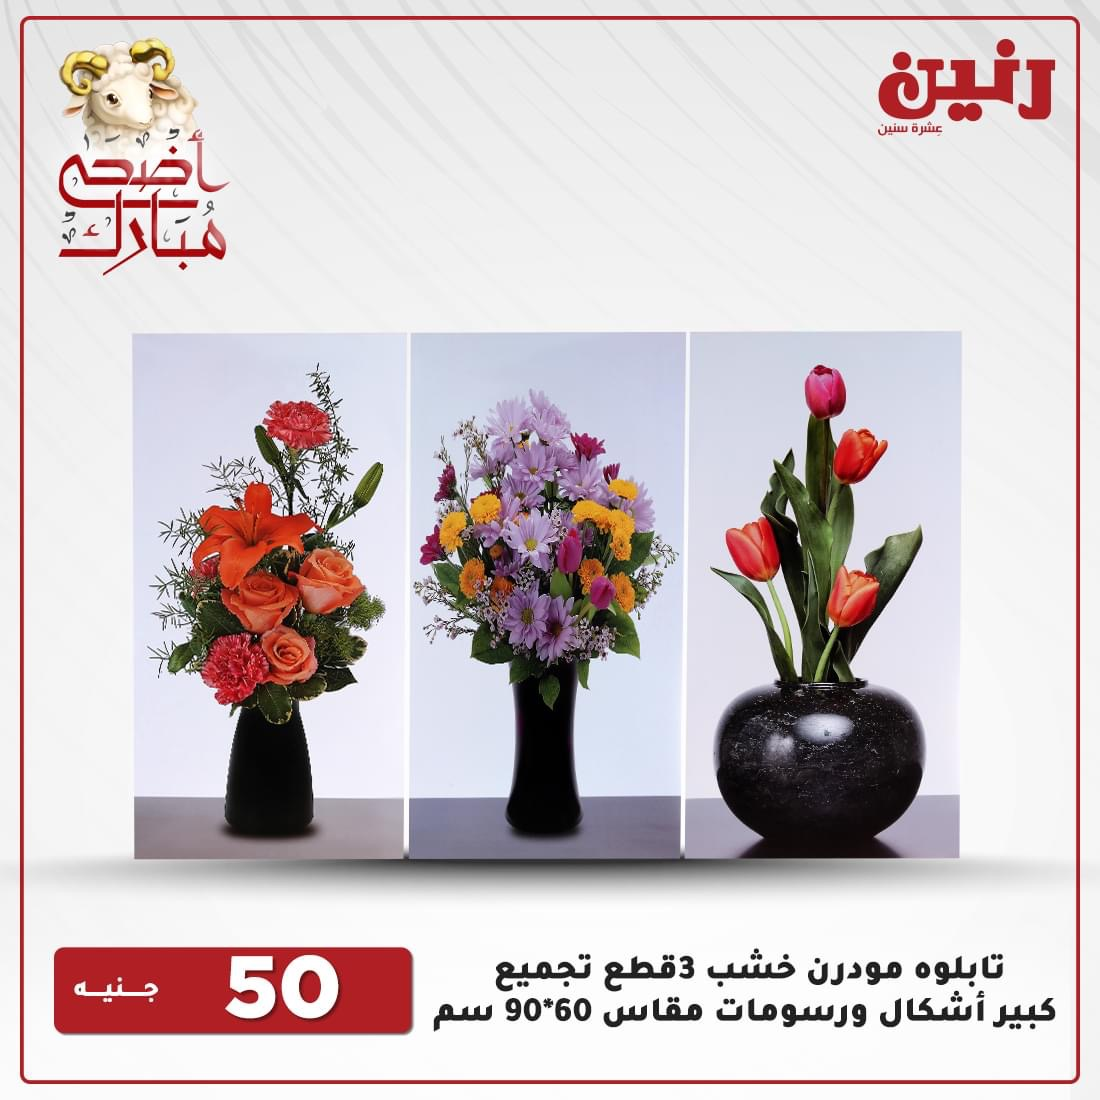 Raneen offers today for appliances and household appliances from July 22 to 24, 2021 5